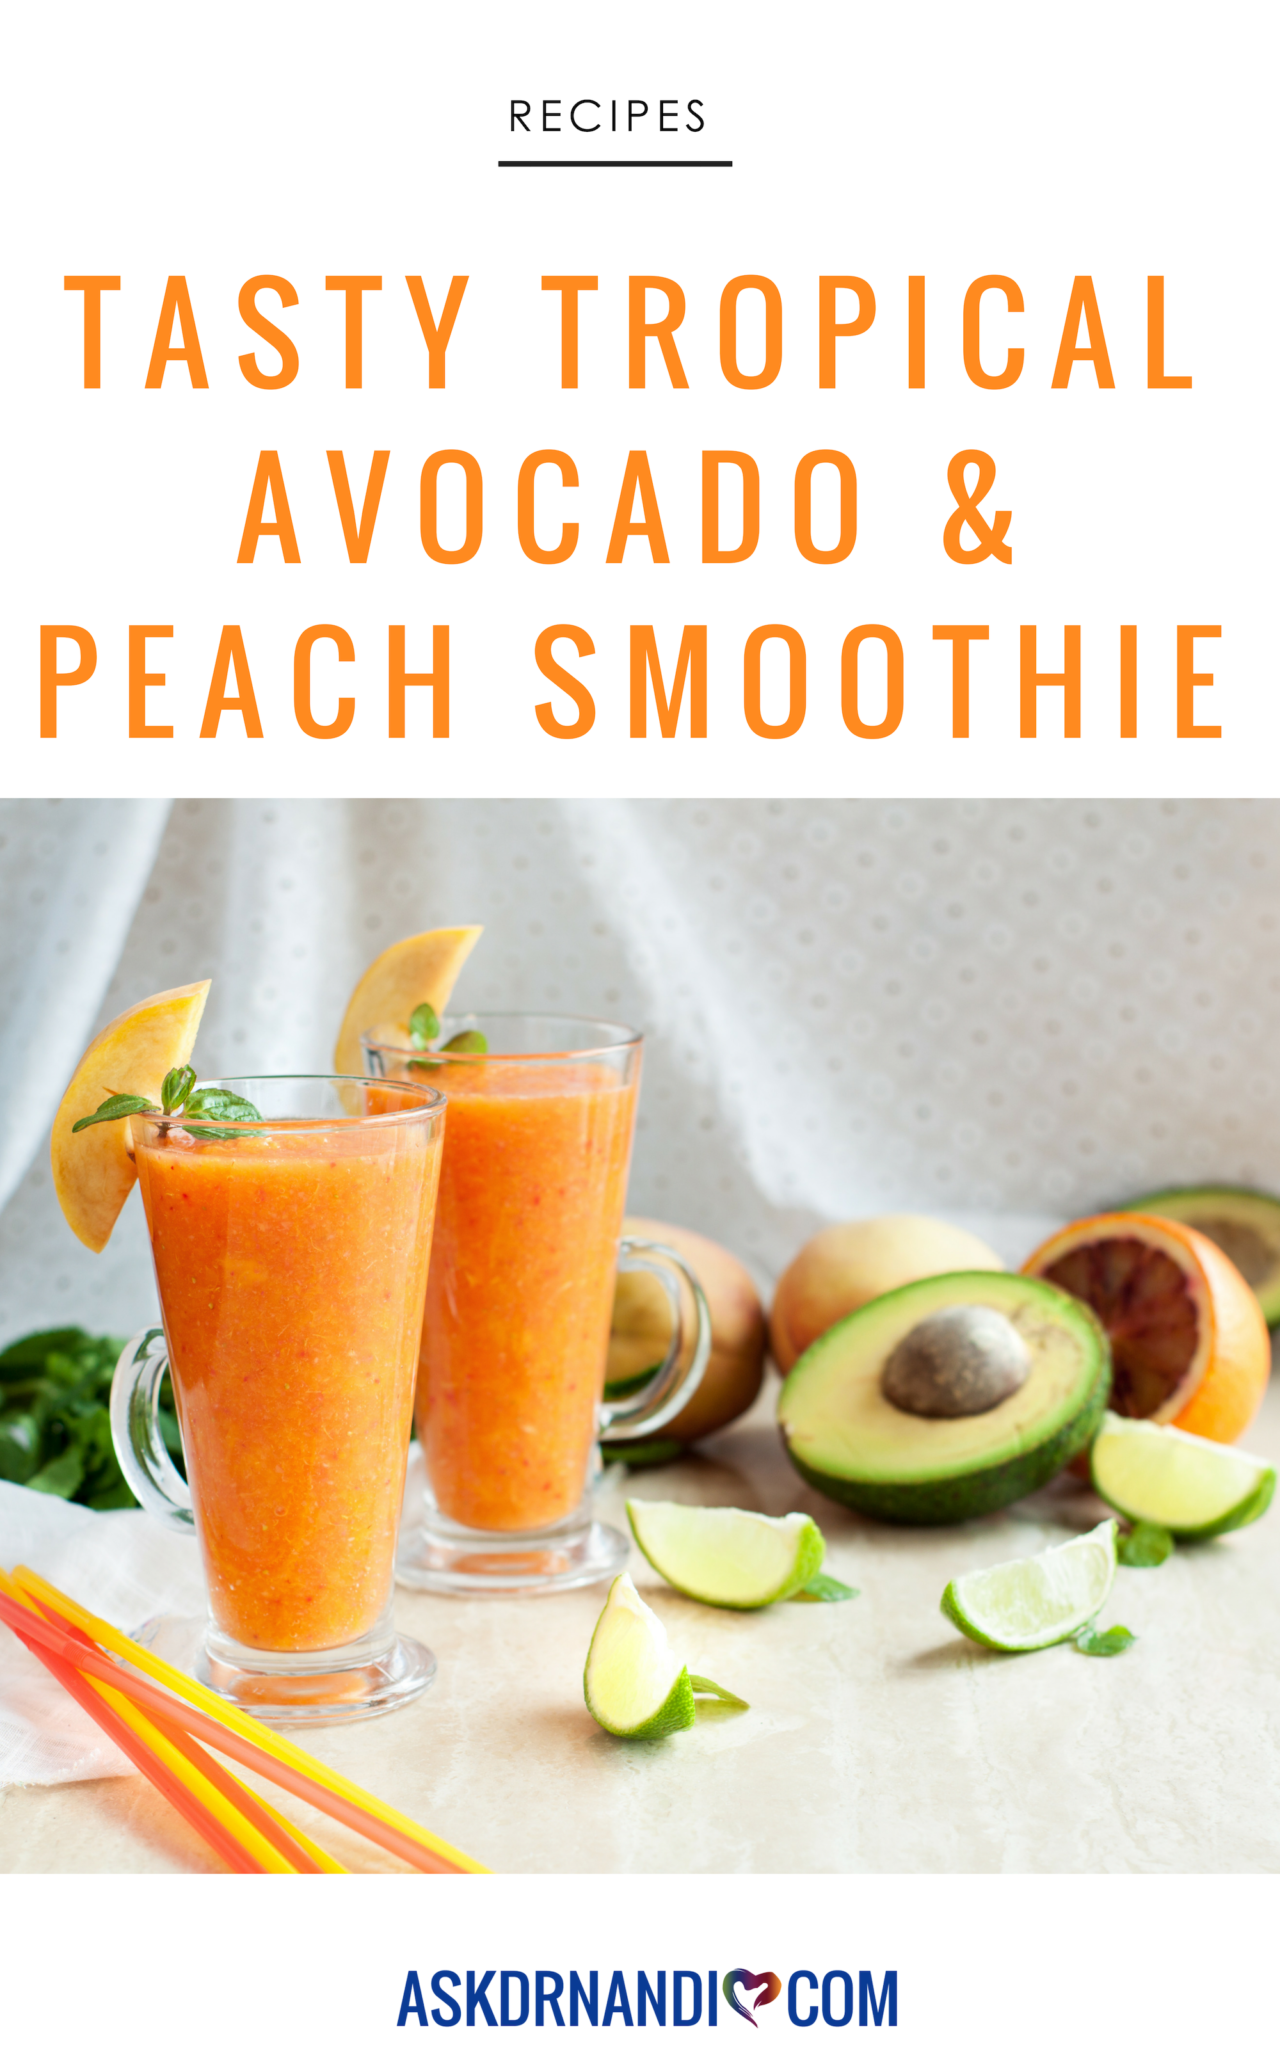 This Tropical Avocado & Peach Smoothie recipe is quickly becoming a favorite of the Ask Dr. Nandi Show!